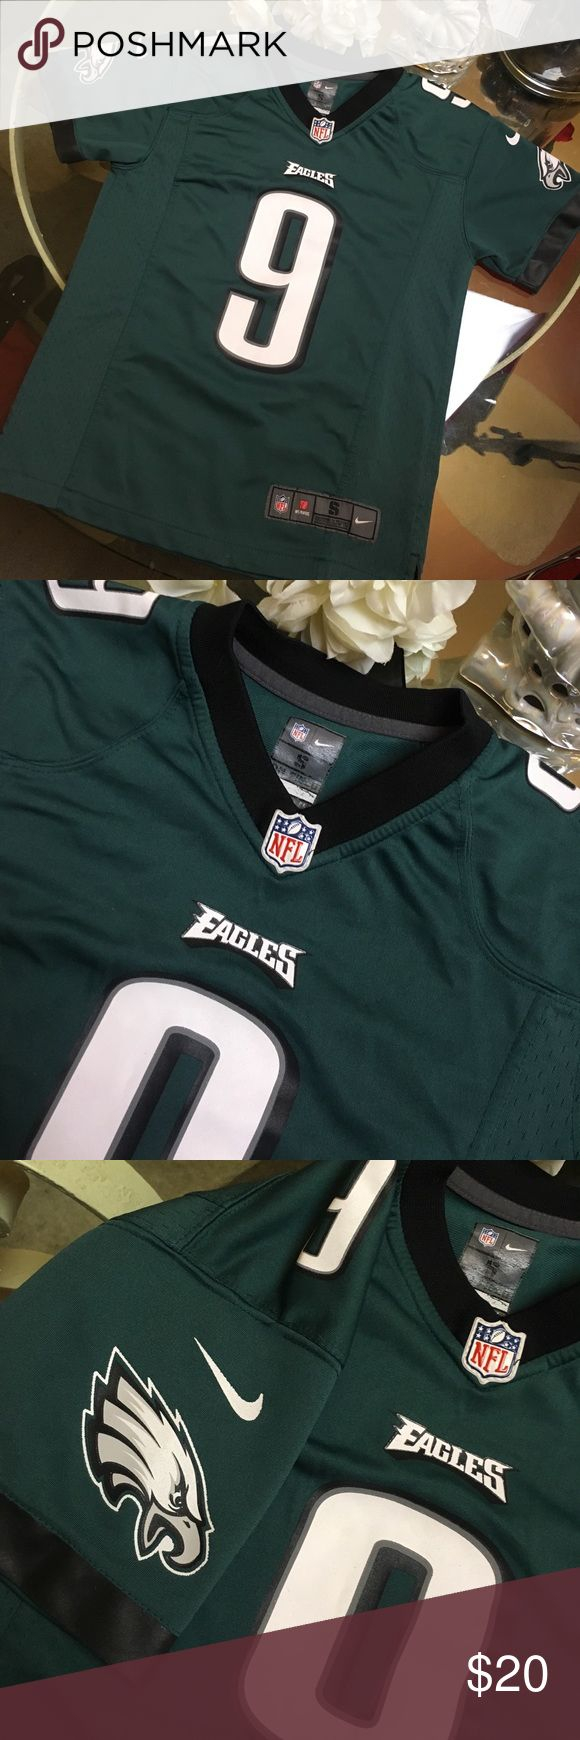 Nike NFL eagles FOLES jersey Excellent condition! No fading, stains , or holes! Nike Shirts & Tops